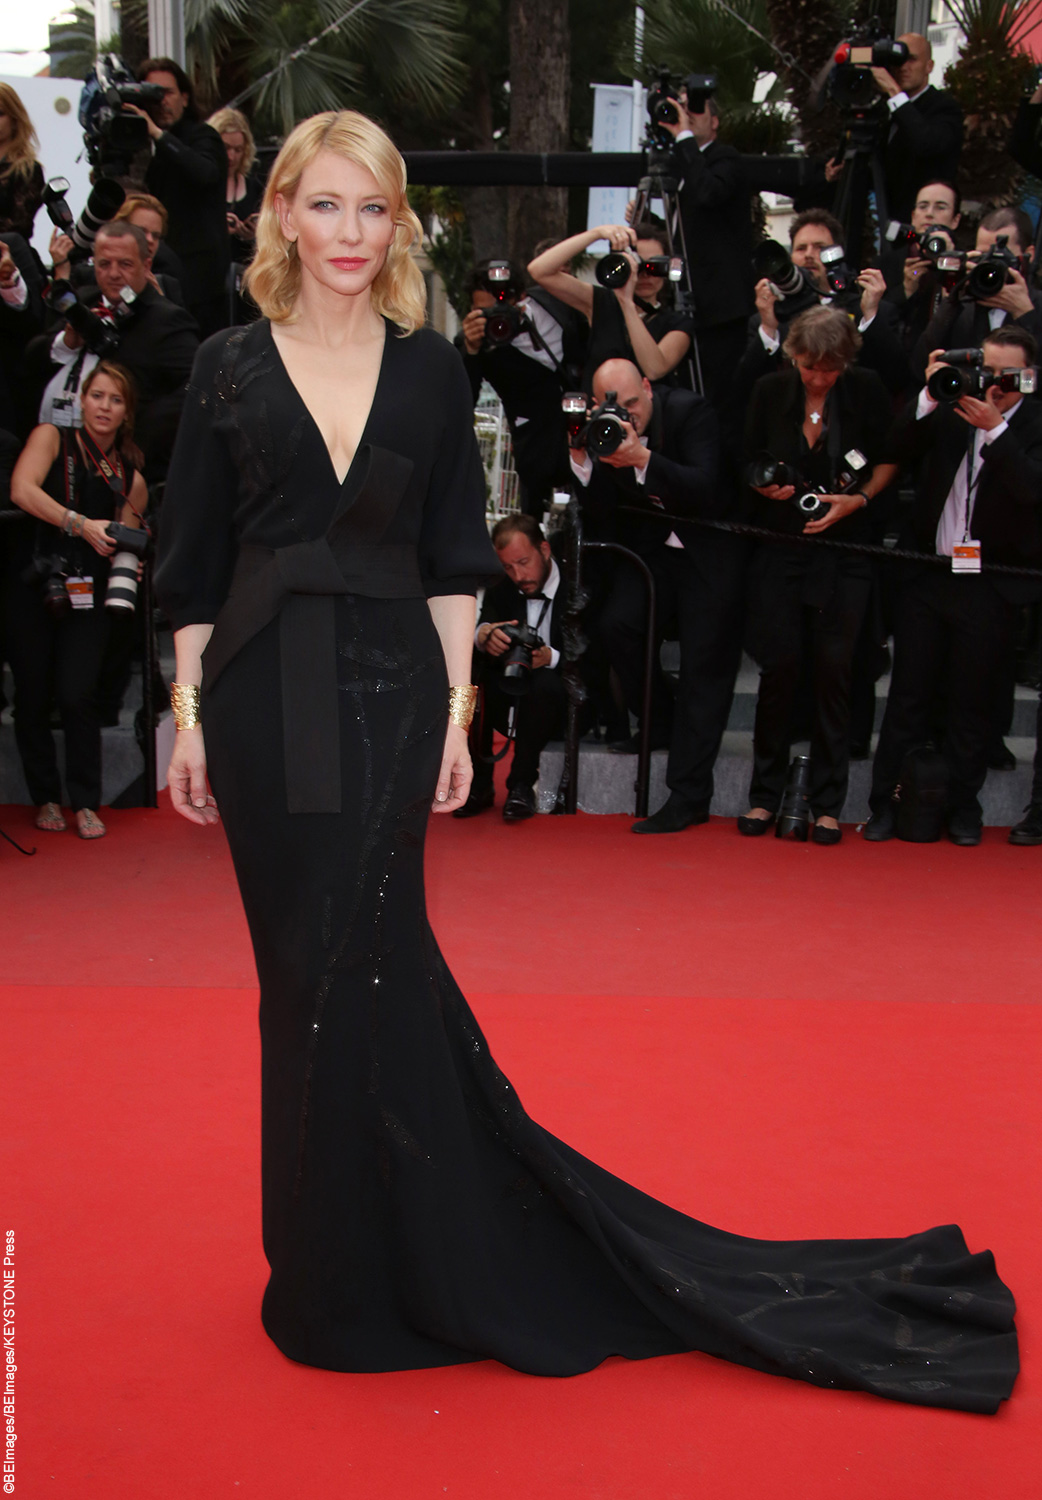 Oscar-winning actress Cate Blanchett looked regal in a black gown at the premiere of Sicario on May 19. The actress looked elegant with her bright blonde hair loosely curled and a soft pink lipstick to top off the look.